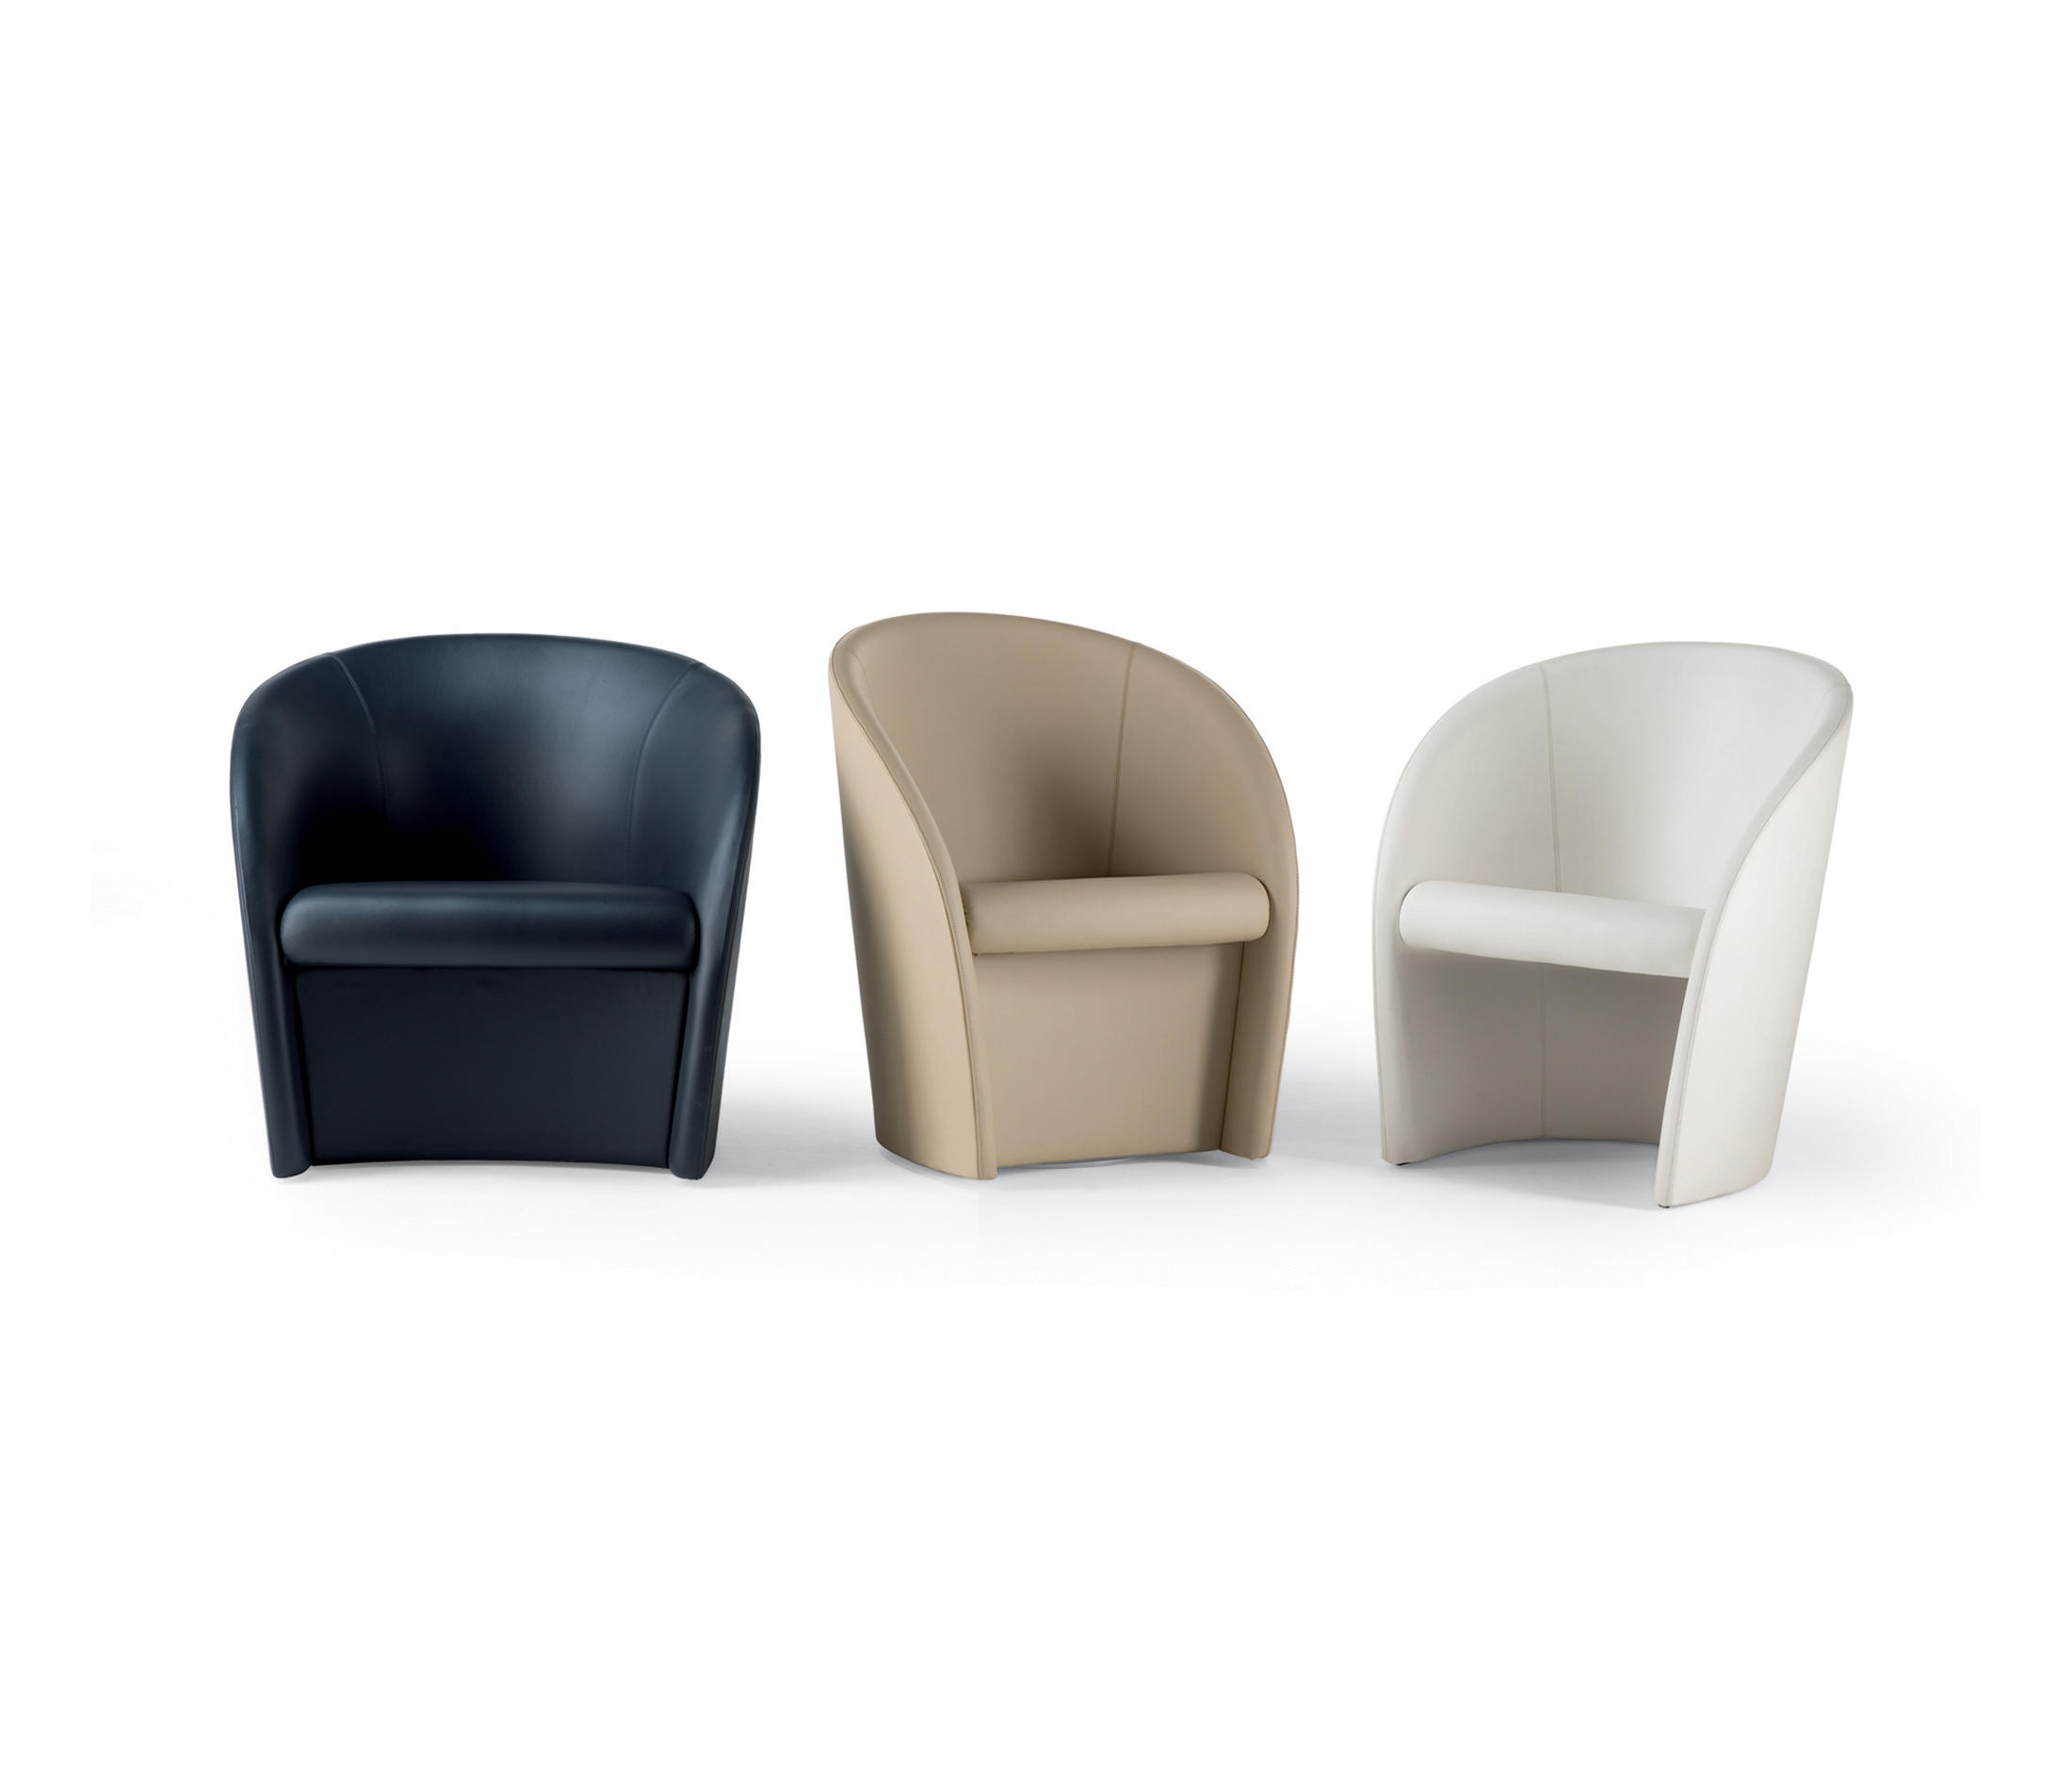 vista posture chair recliner riser chairs for the elderly intervista lounge from poltrona frau architonic